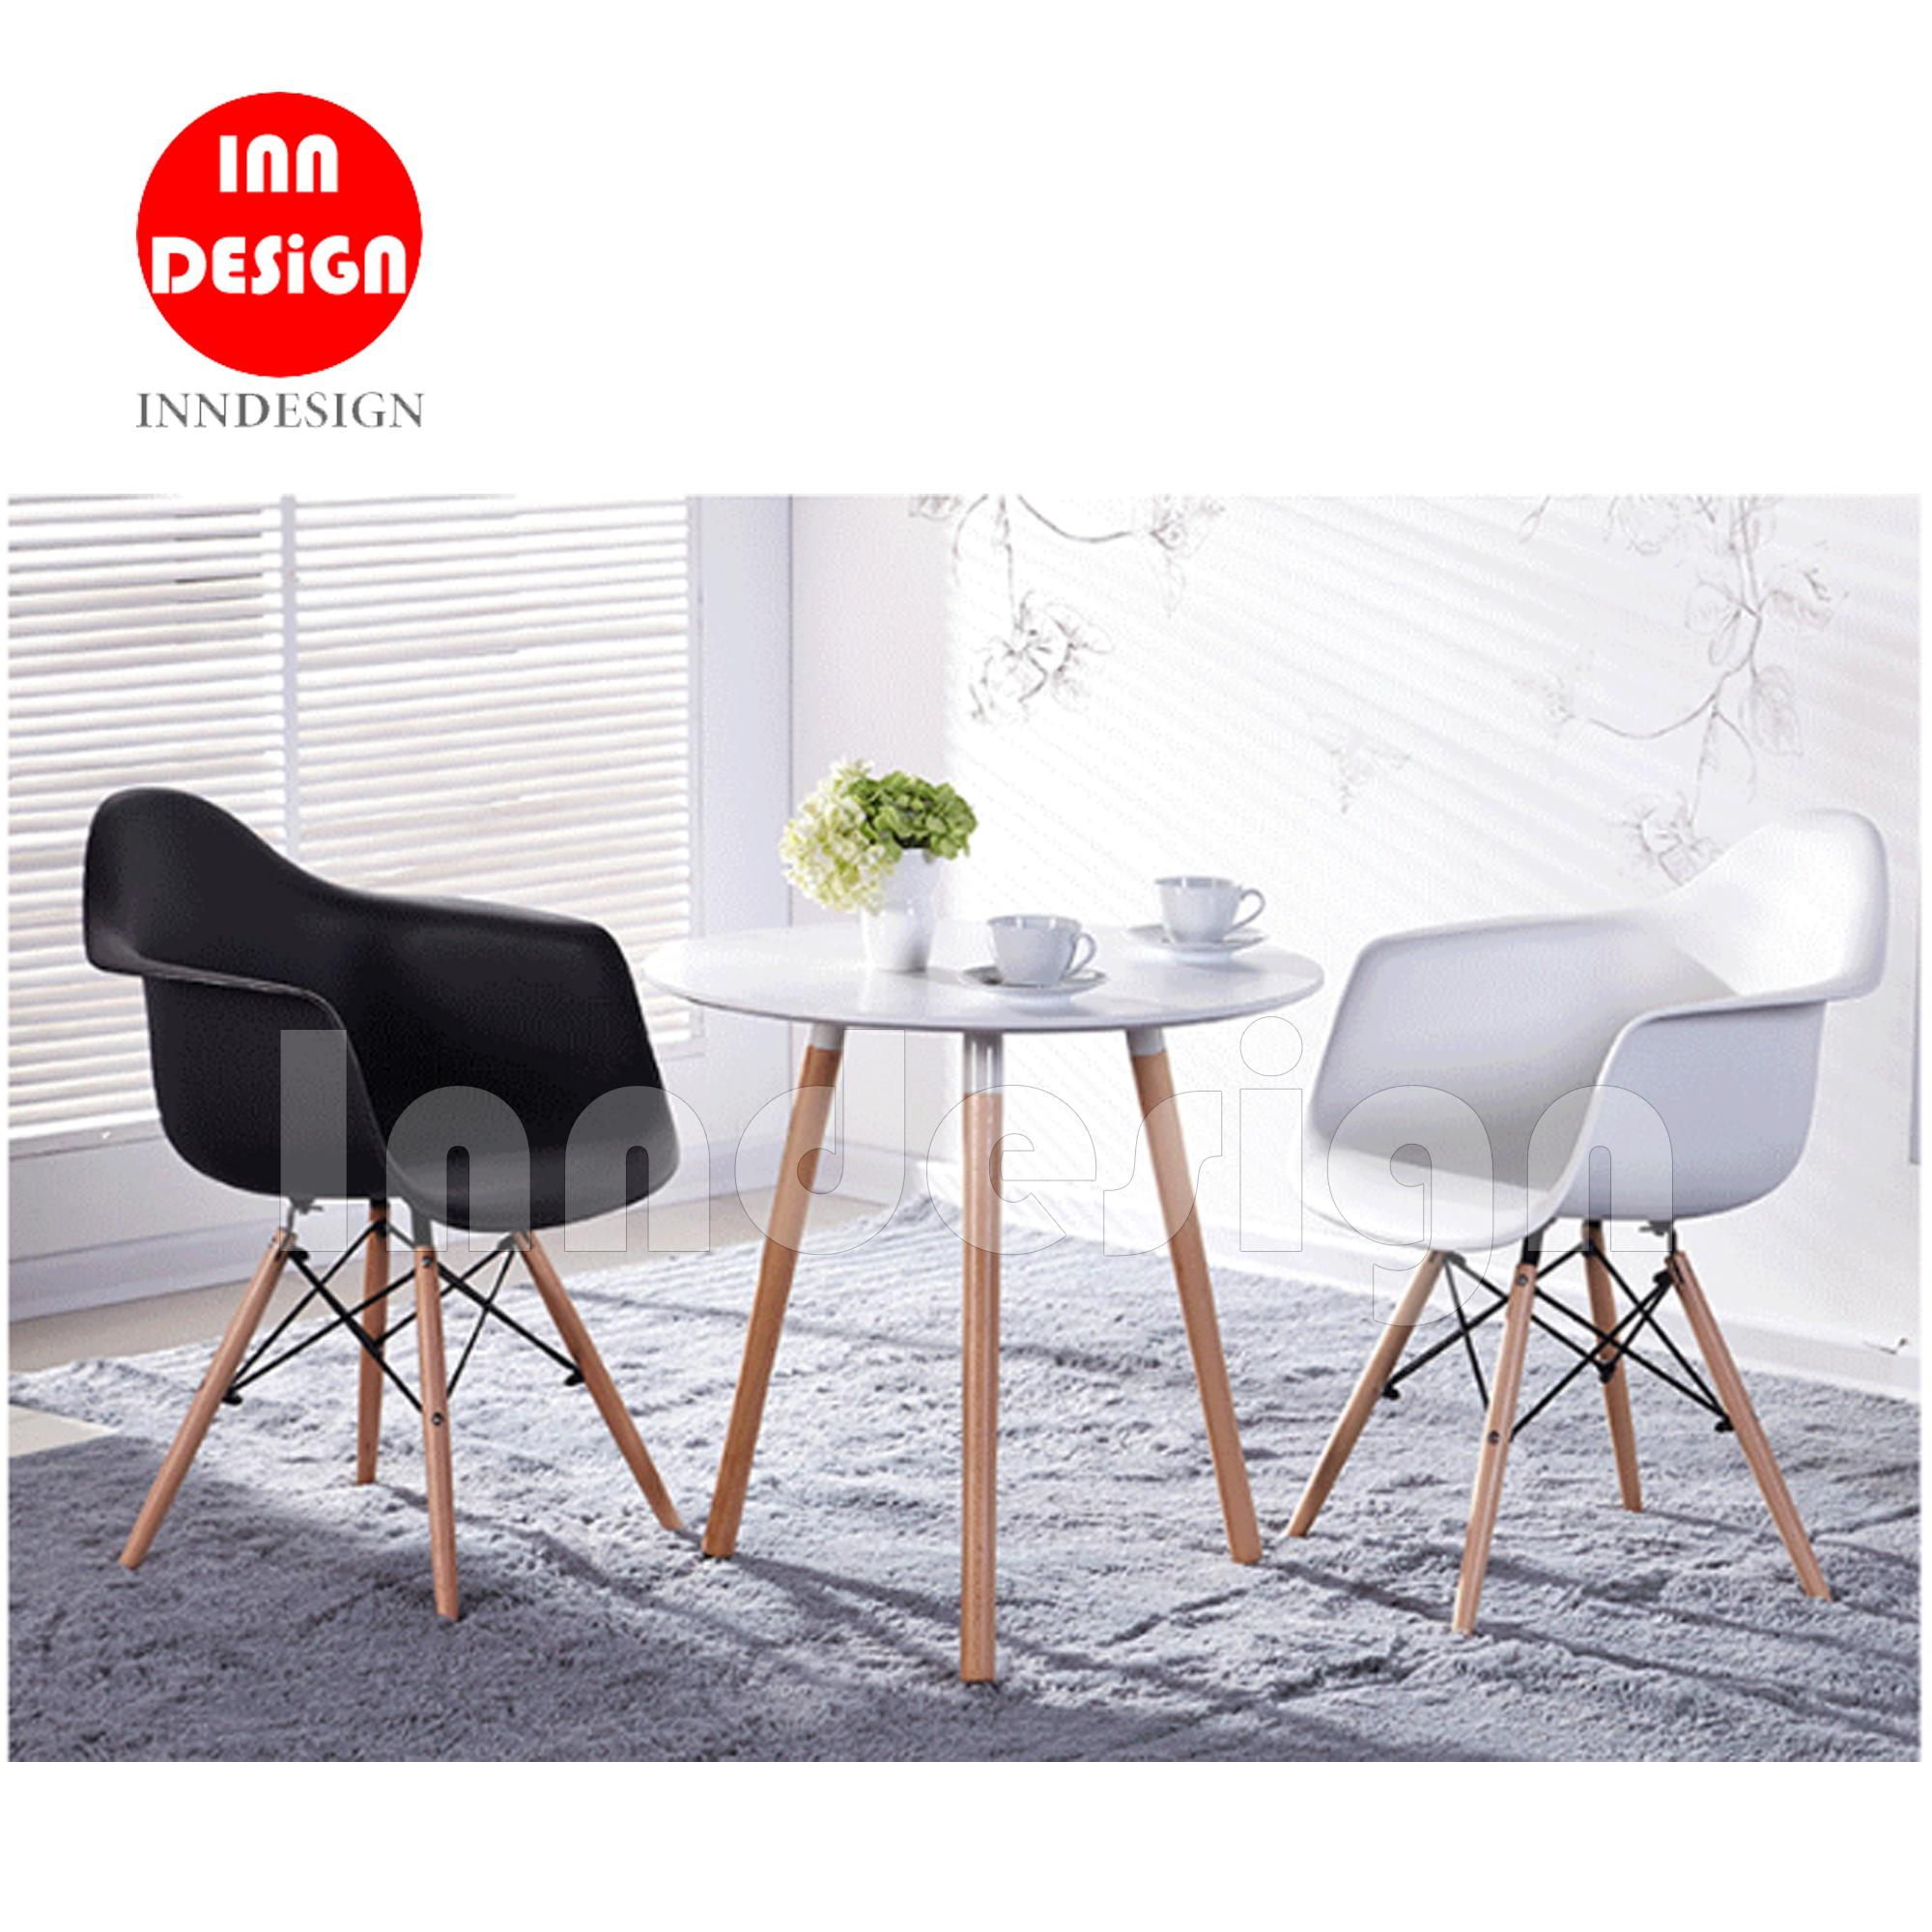 Eames Anthony II Dining Table Set / Coffee Table Set / Dining Chair (1 Table +2 Chairs)